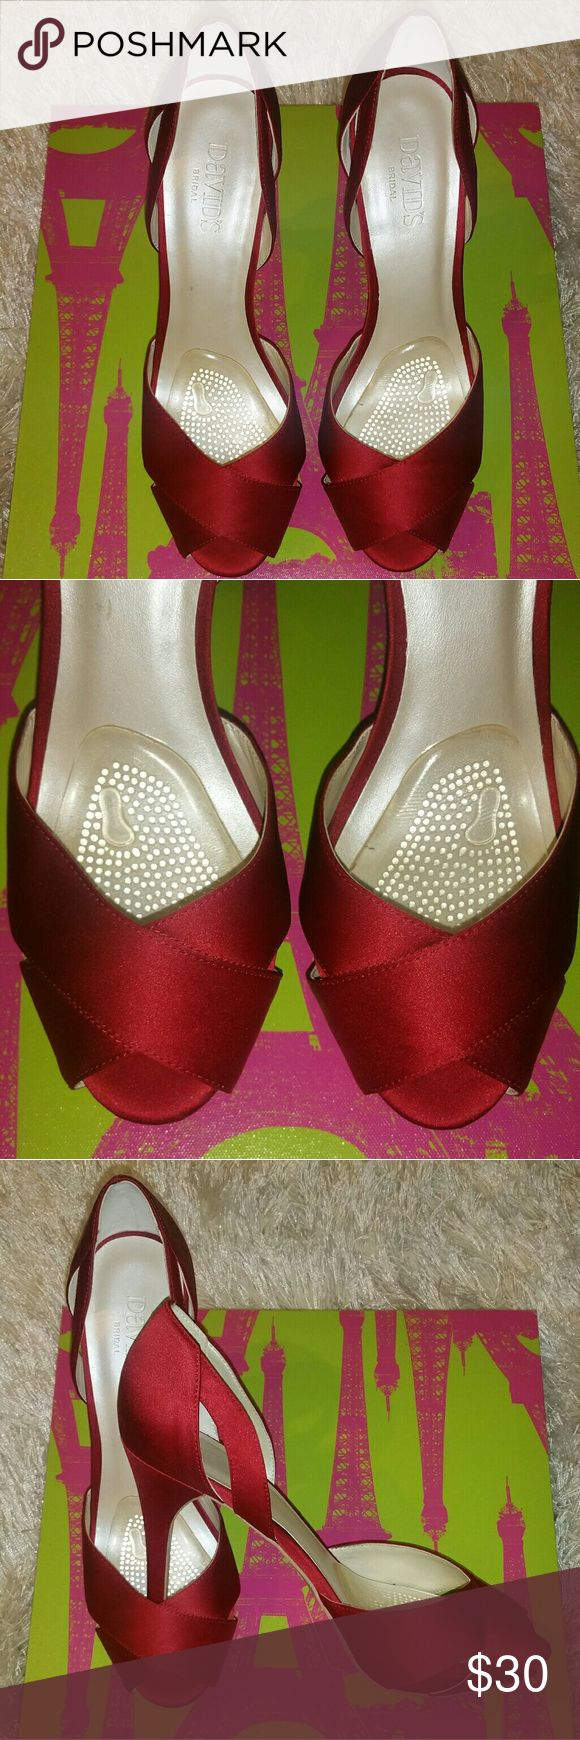 """🌹DAVIDS BRIDAL """"SAVANAH"""" Heel Size 8.5 David's Bridal Savanah Heel. Size 8.5. Pre-Loved. Perfect for wedding, formals, holiday parties and prom. Burgundy Color. Well Maintained. Please view photos. Make an Offer. Let's Chat.👠 David's Bridal Shoes Heels"""